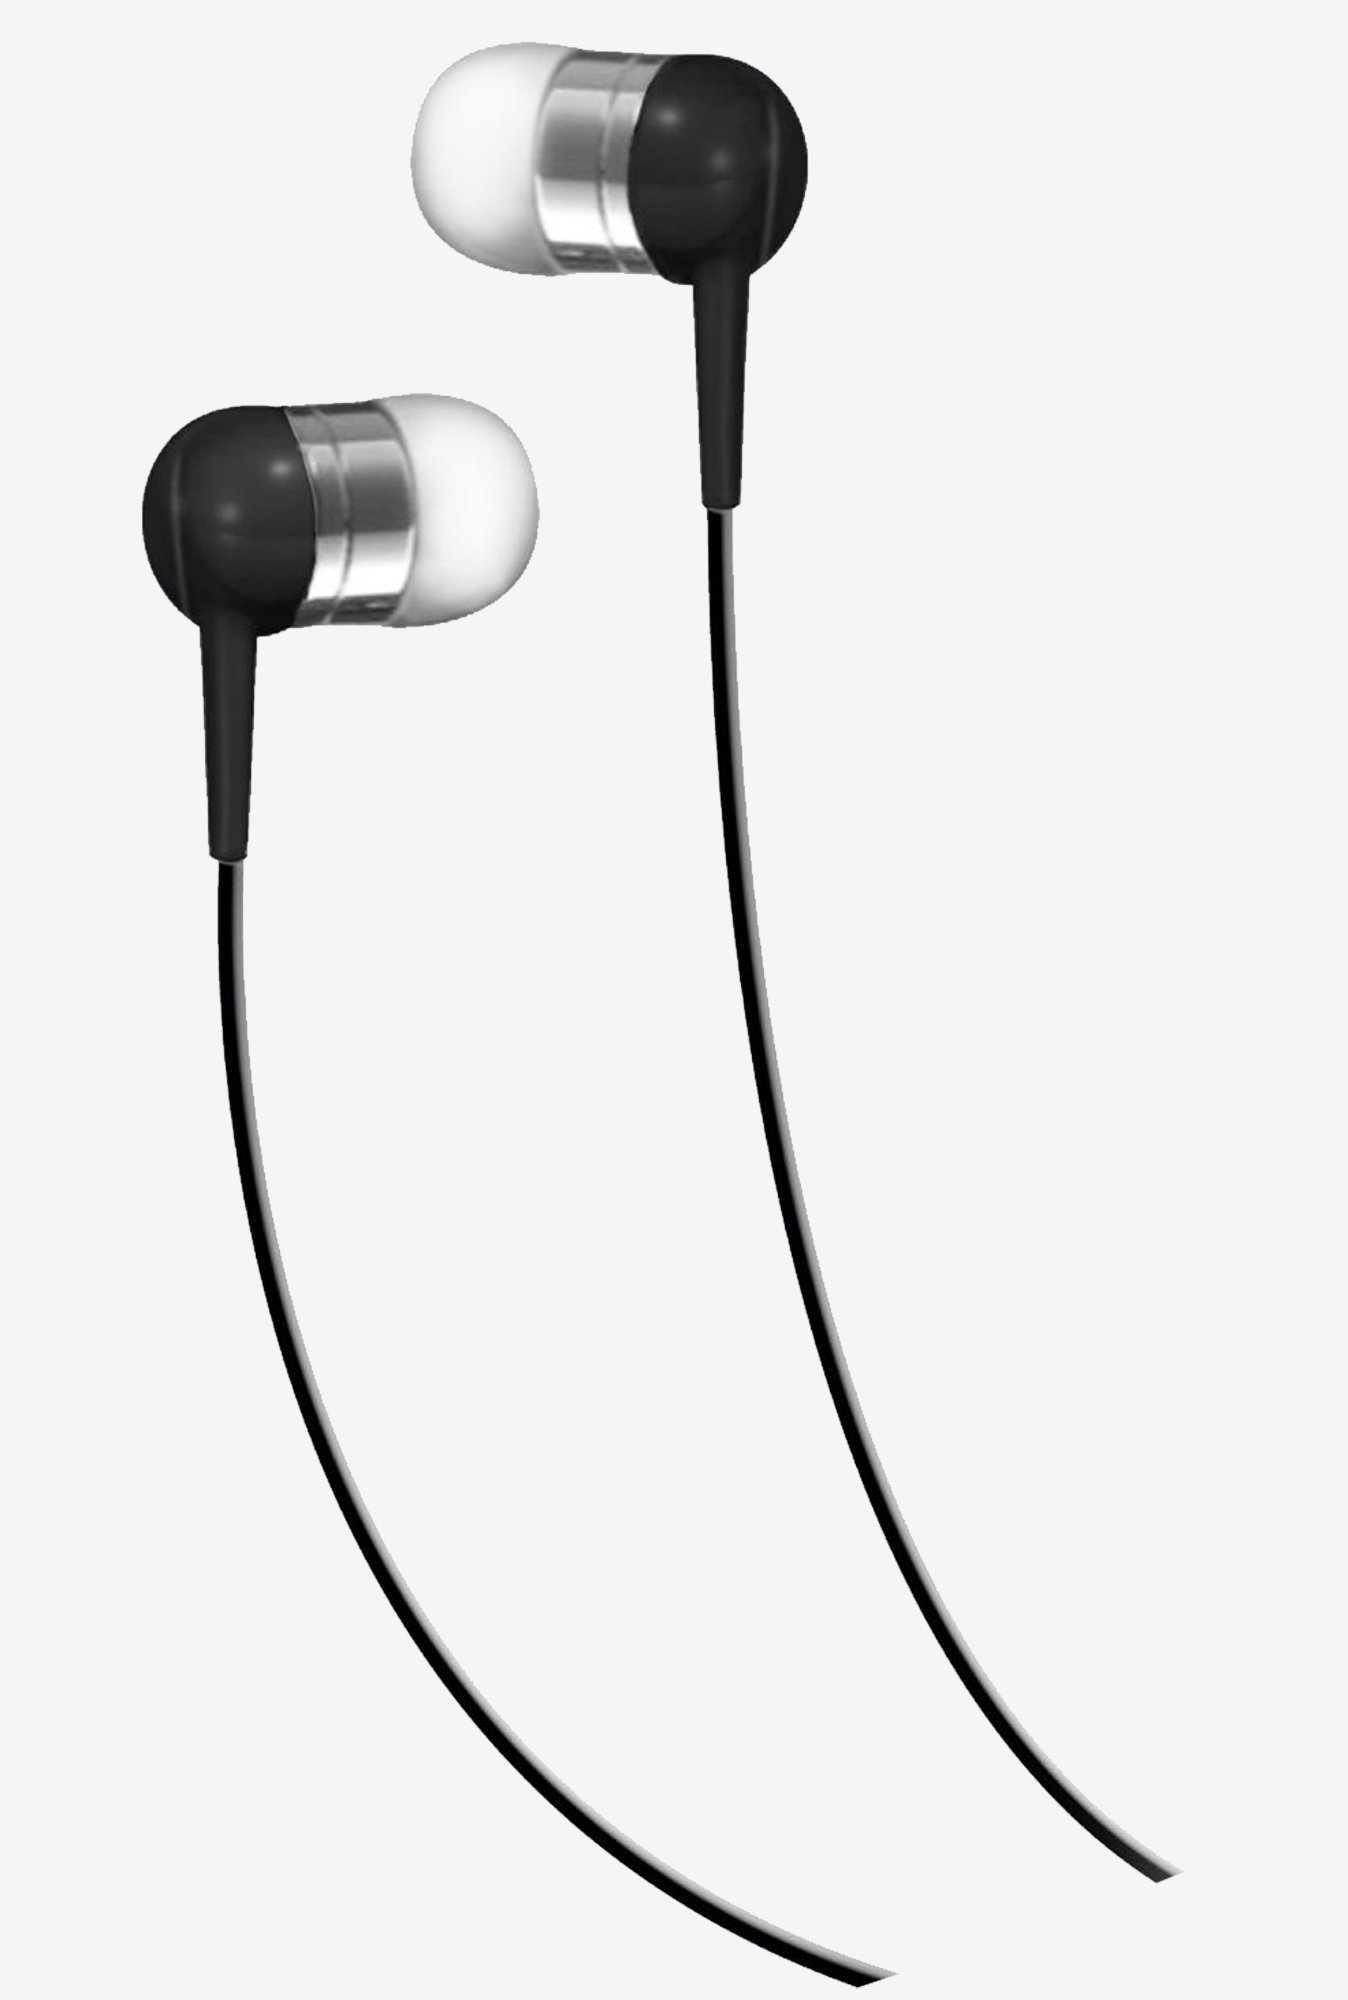 Maxell 190277 M2 In The Ear Earbuds Black